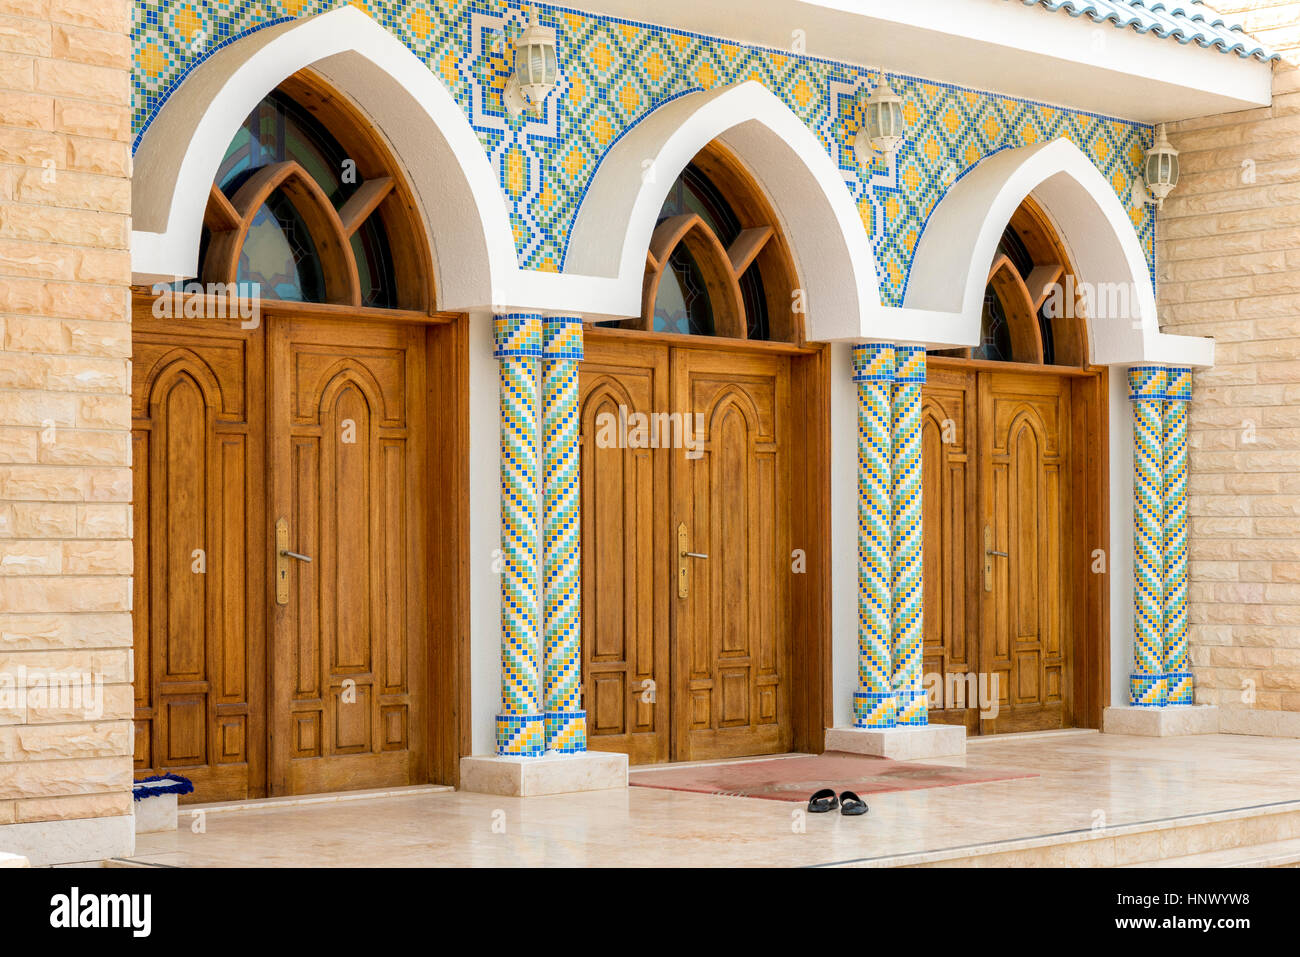 Mosque Entrance. Main Entrance Doors To An Islamic Mosque In Al Ain, United  Arab Emirates With Traditional Tiles And Woodwork